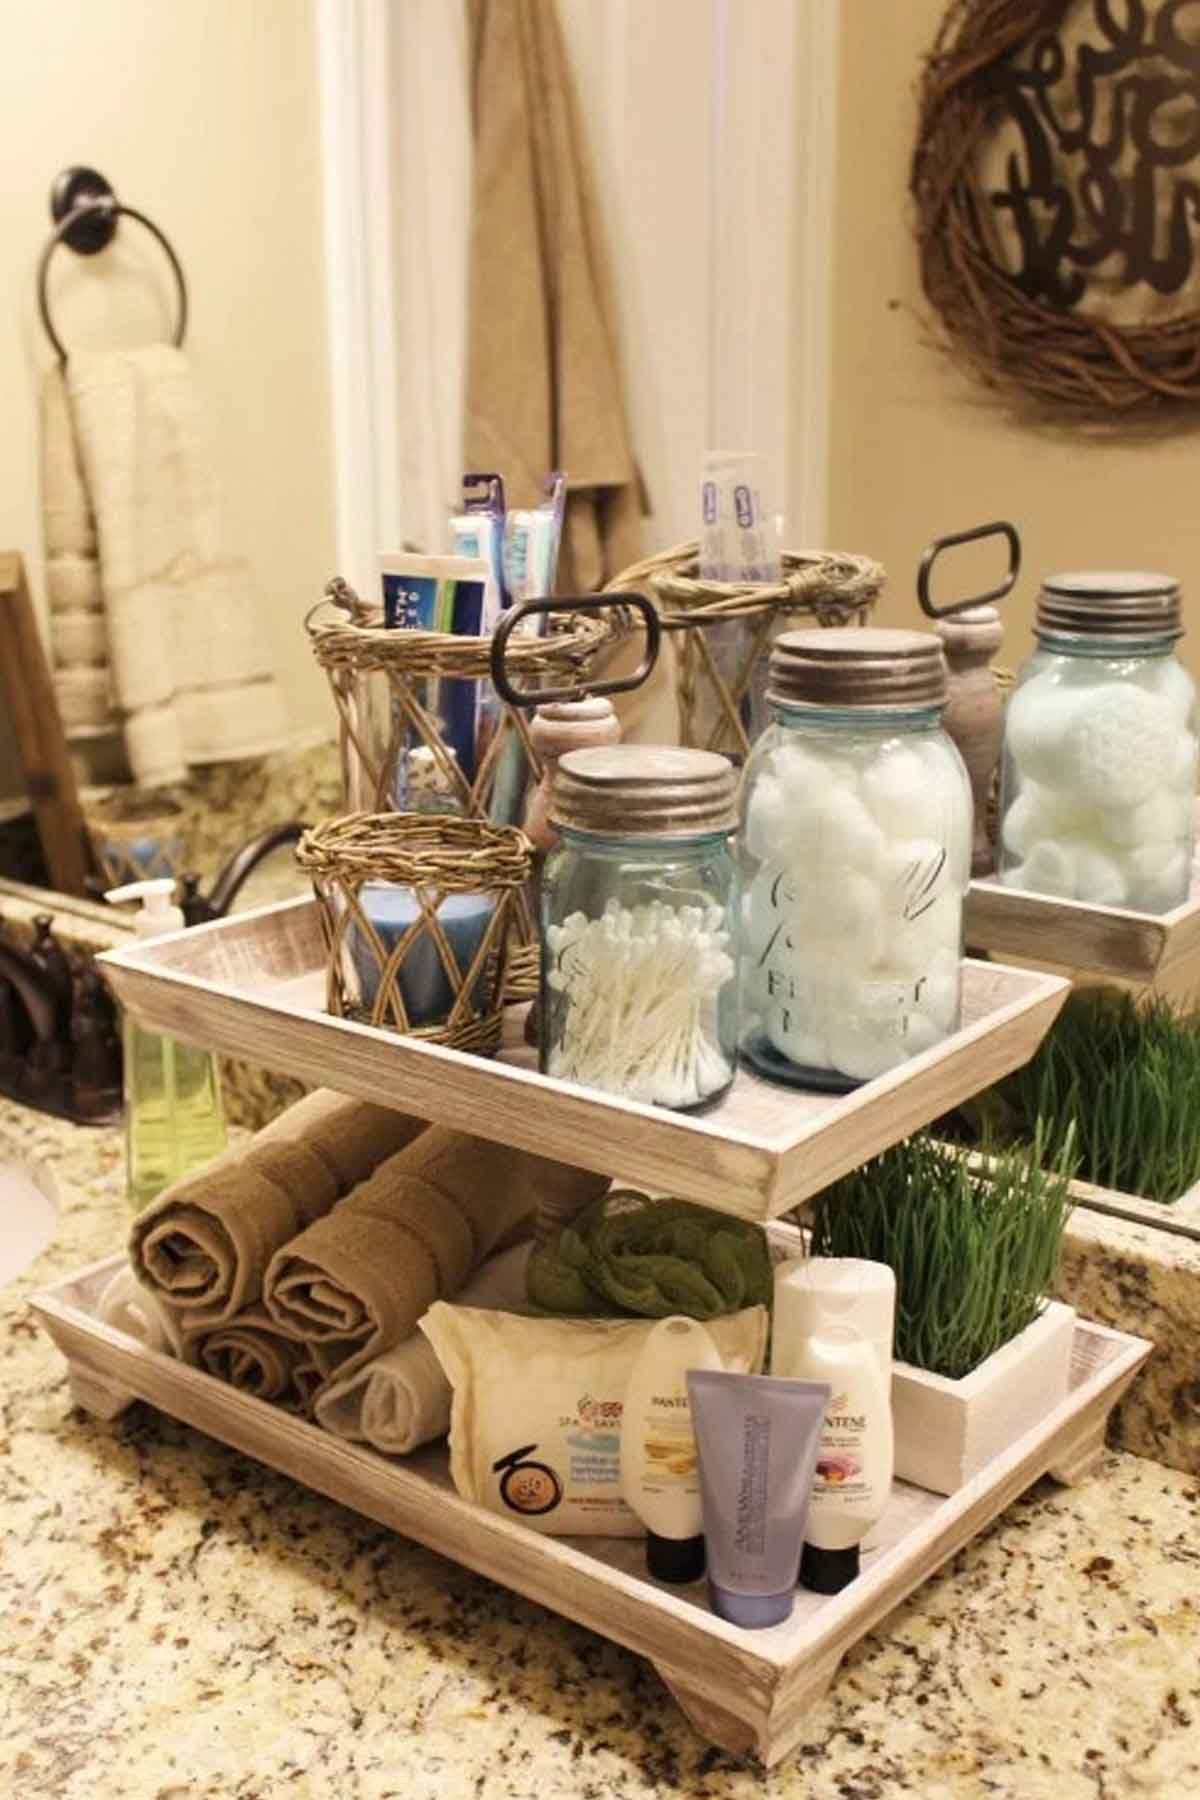 Bathroom Organization Mason Jars The Bloggers Behind The Diy Blog Diy Playbook Show You How To Make A Mason Jar Organizer In Farmhouse Bathroom Organizers Modern Bathroom Design Small Bathroom Organization